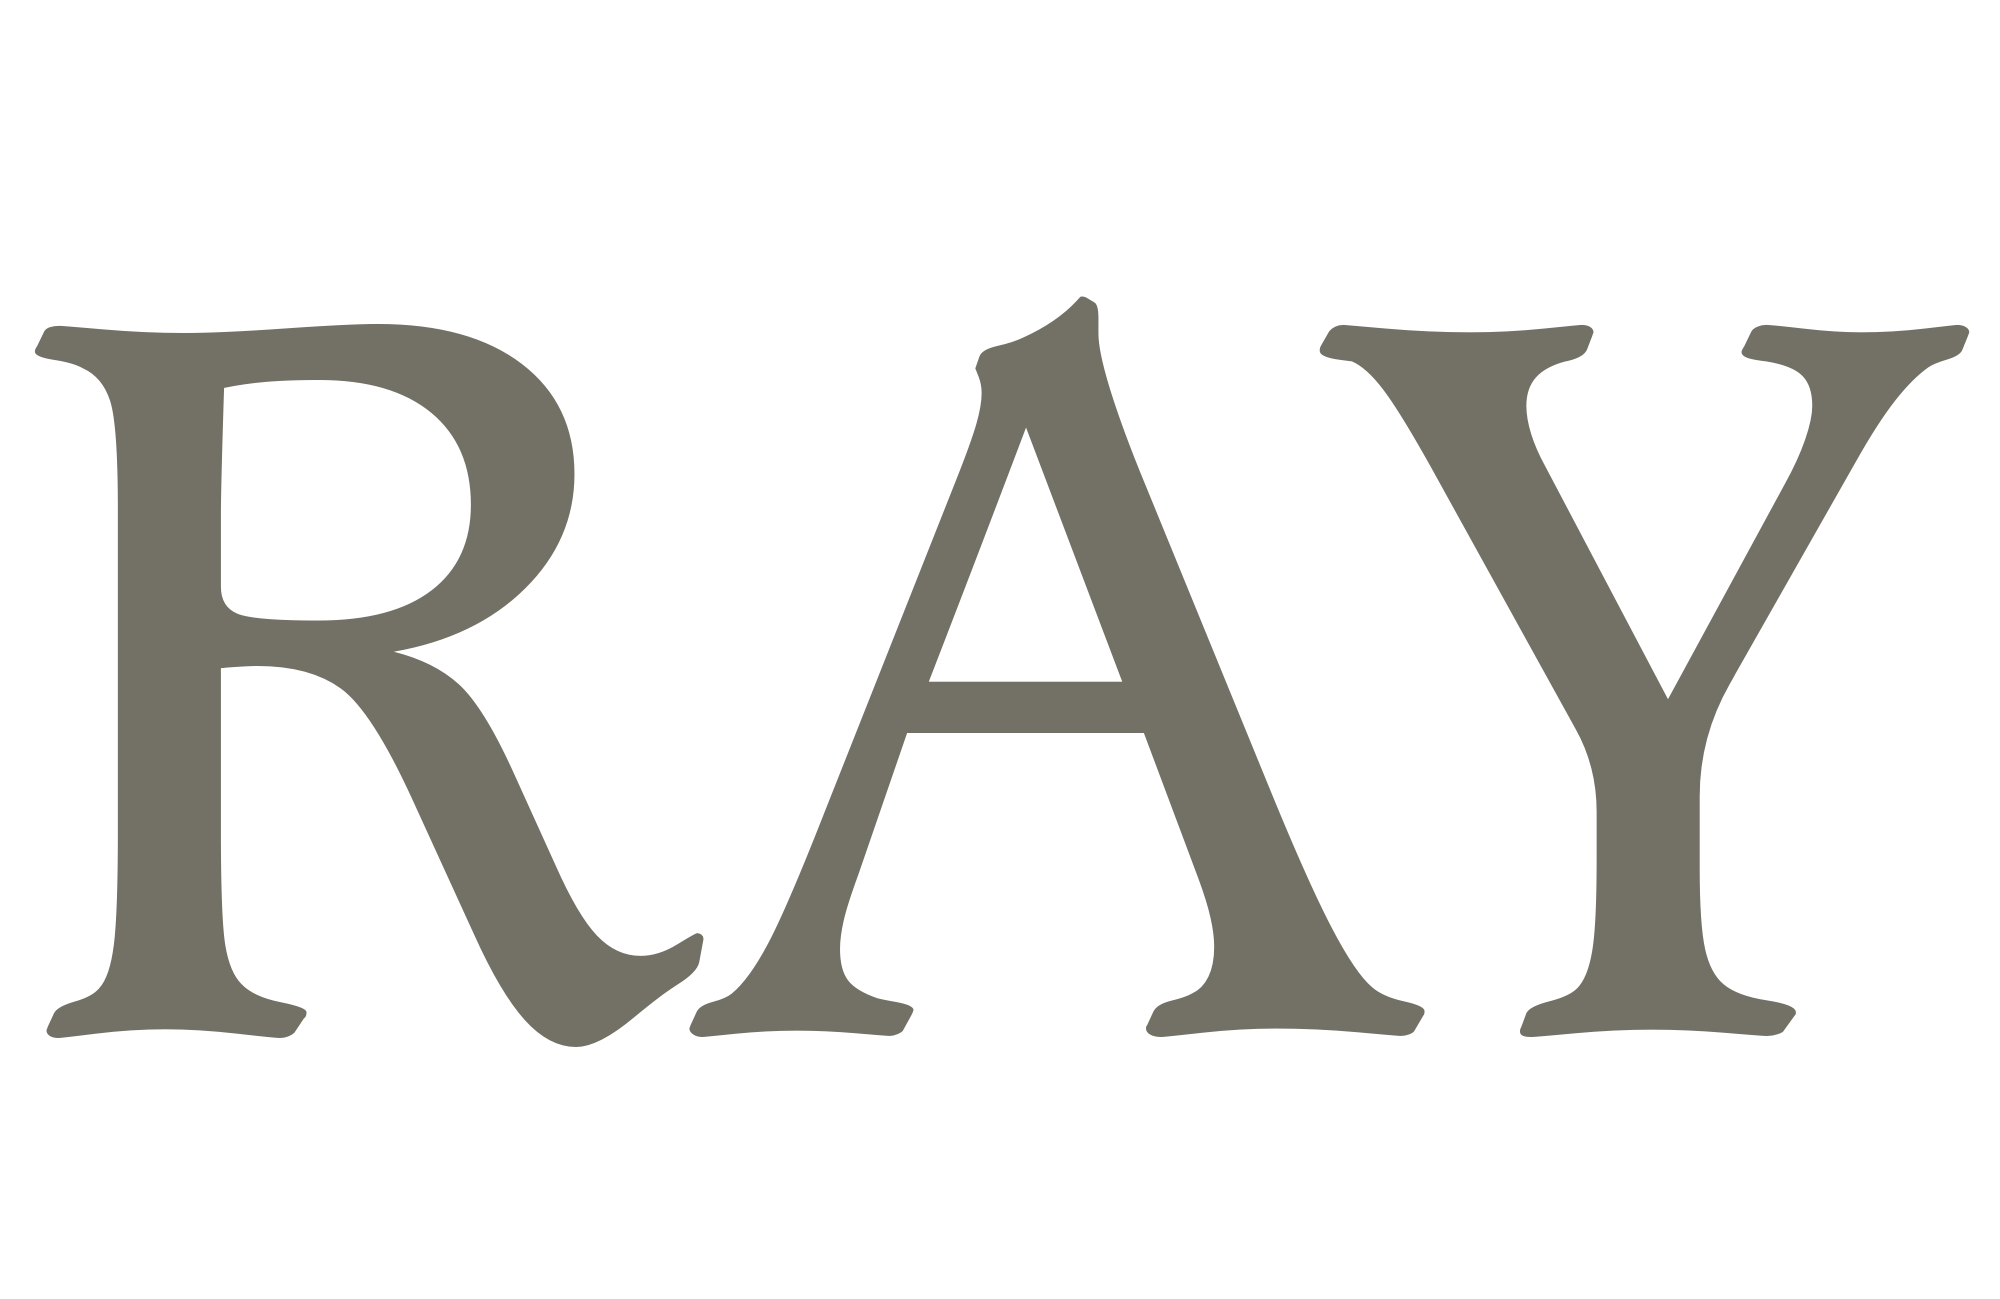 Ray - Name's Meaning of Ray